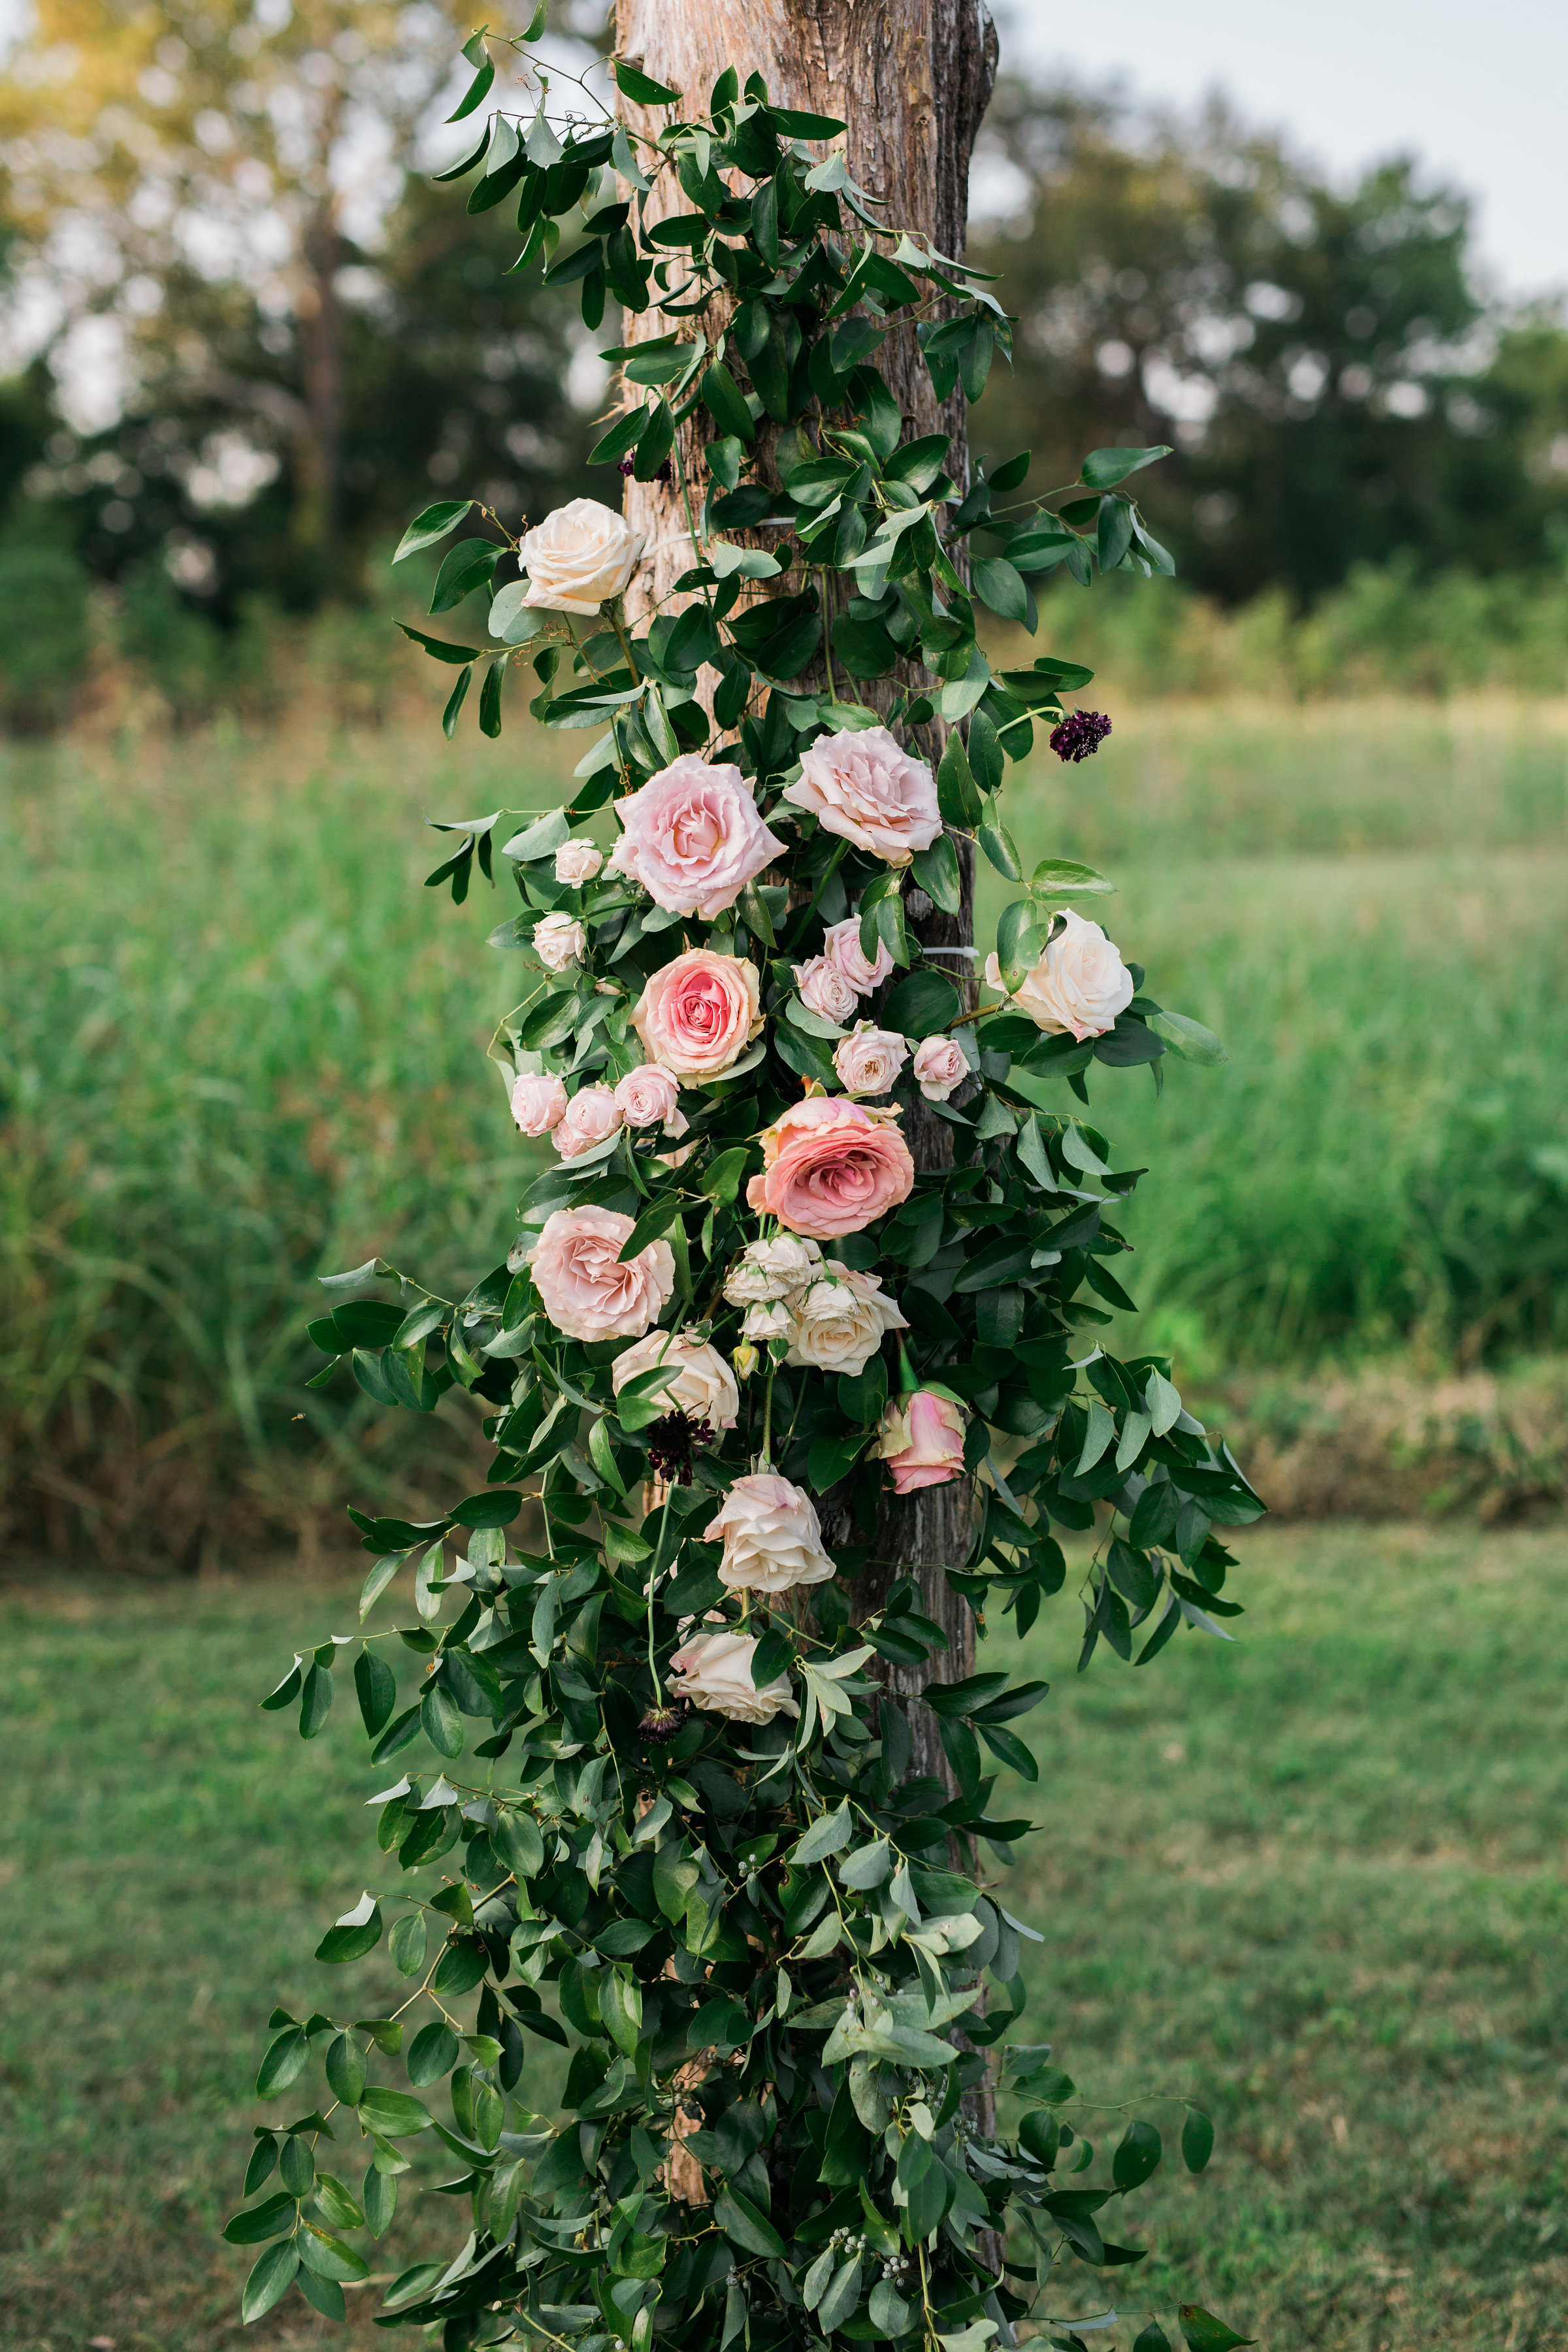 Simple wooden arbor with lush floral in shades of marsala and blush // Nashville Wedding Floral Design